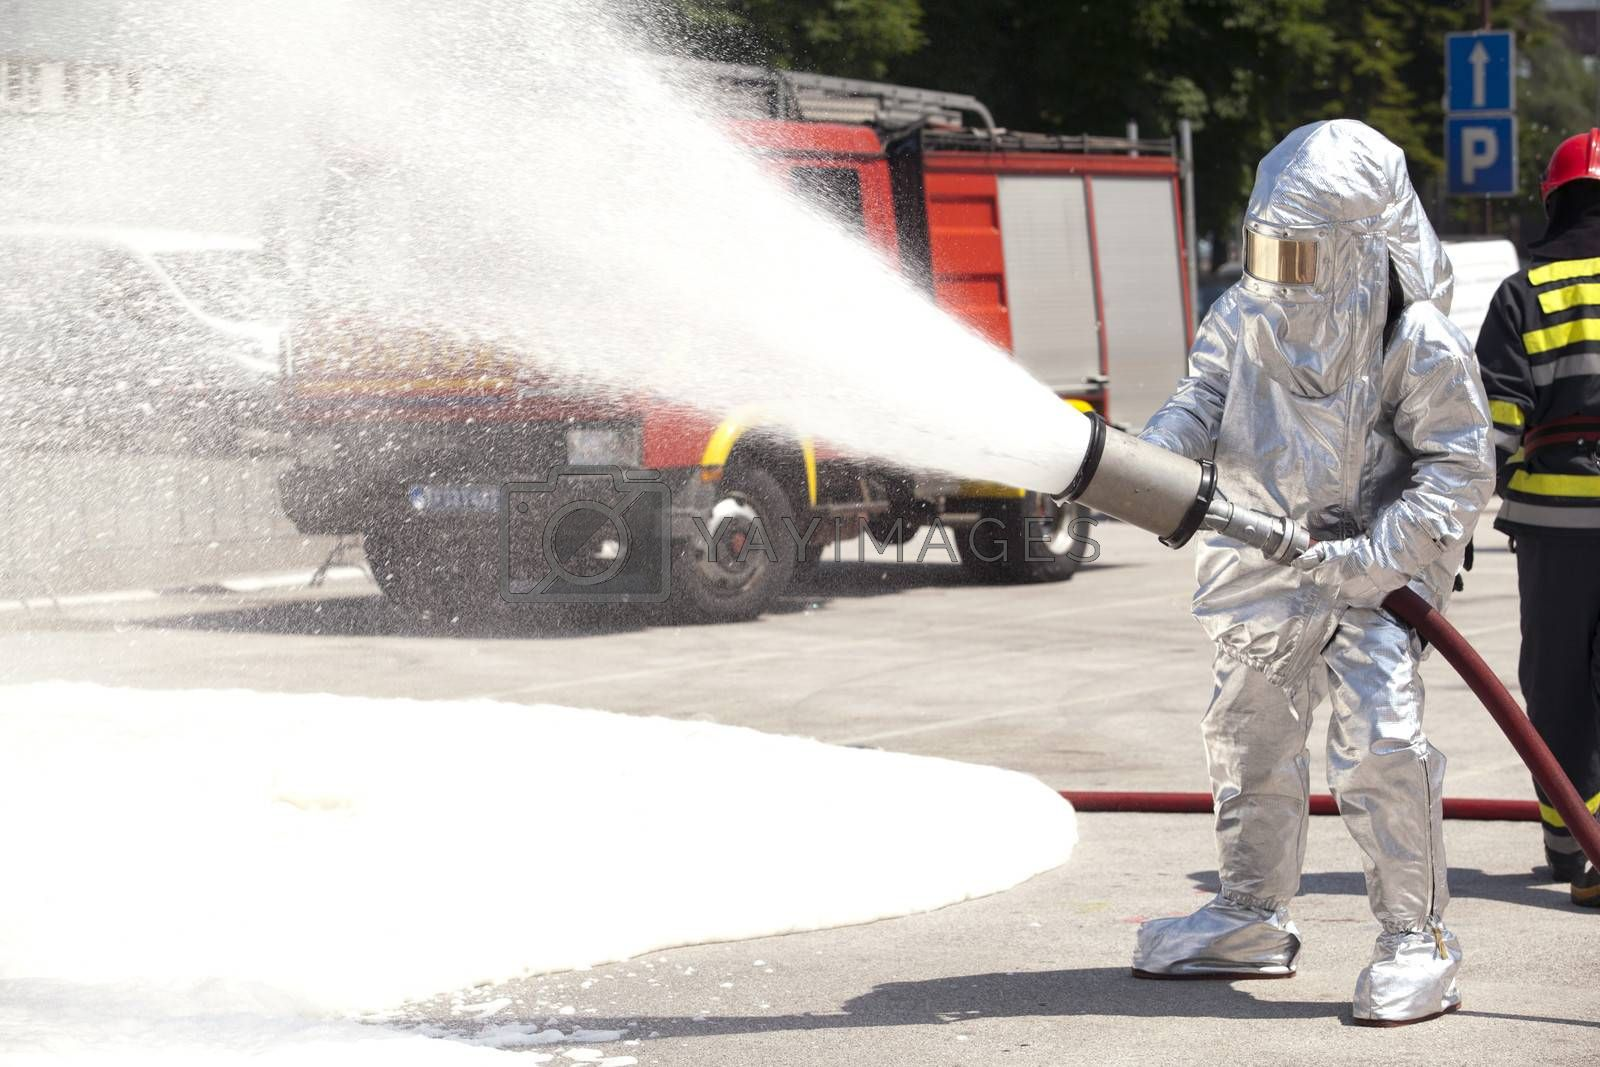 Royalty free image of Firefighter in action by wellphoto